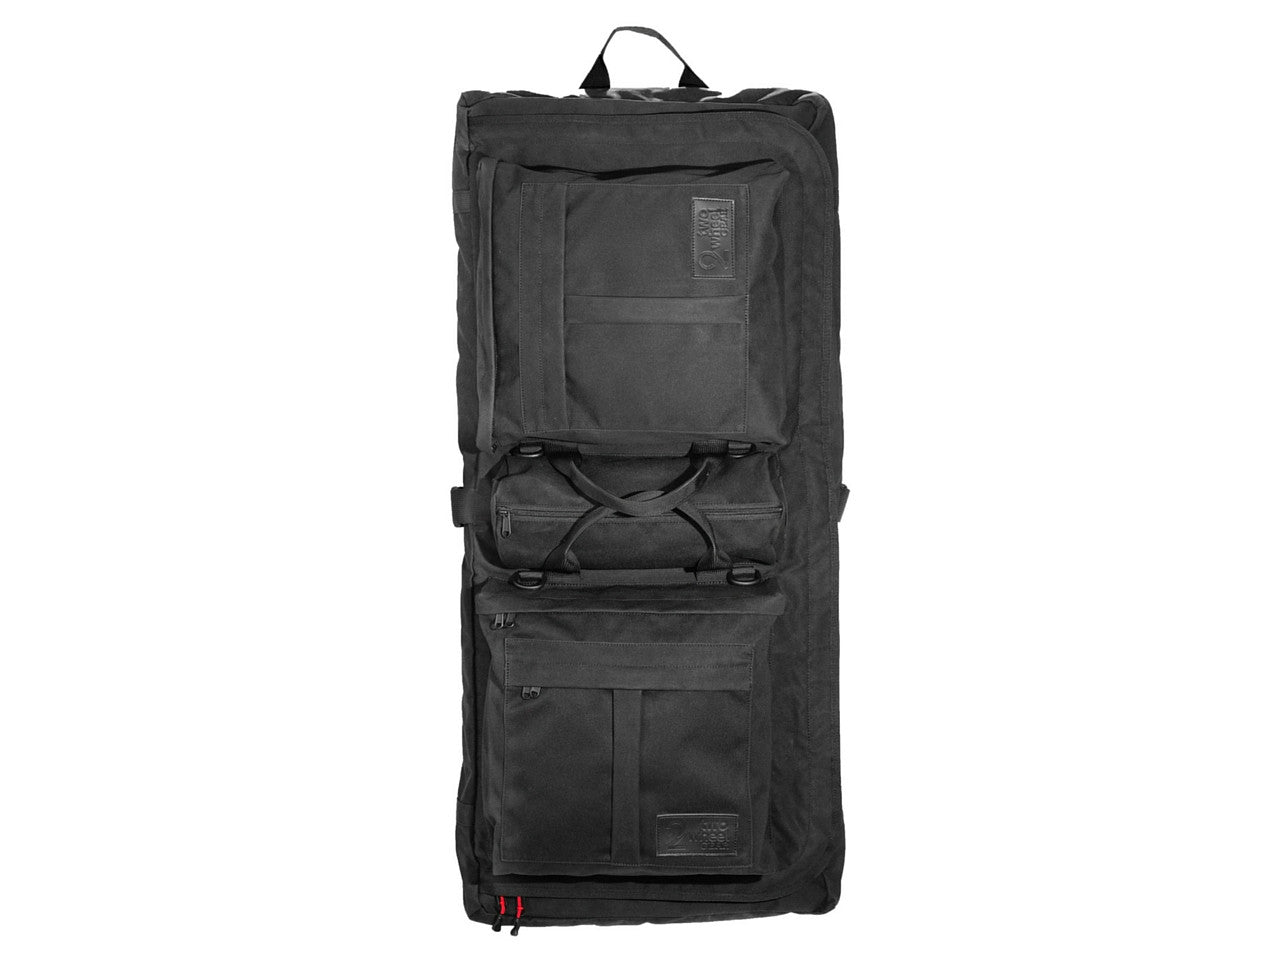 Executive 2.0 Garment Pannier - Black Waxed Canvas , Bags - Two Wheel Gear, Two Wheel Gear - 5